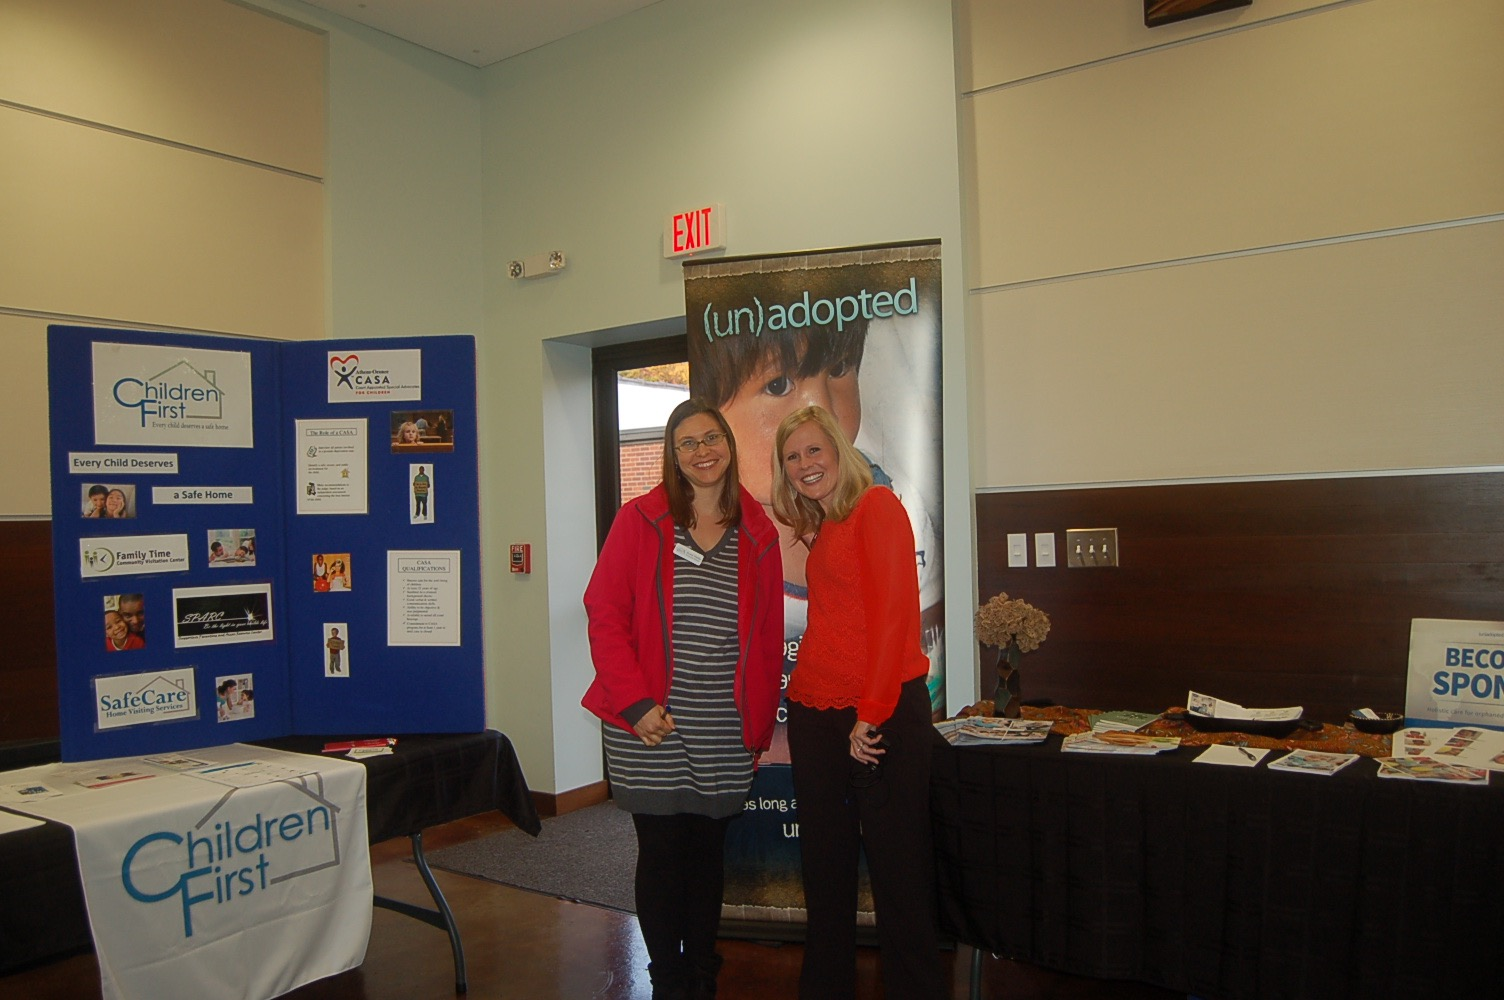 Pictured above are Susie Weller from Children's First and Whitney White from Lifeline Children Services at their booths for the CASA program and (un)adopted program.